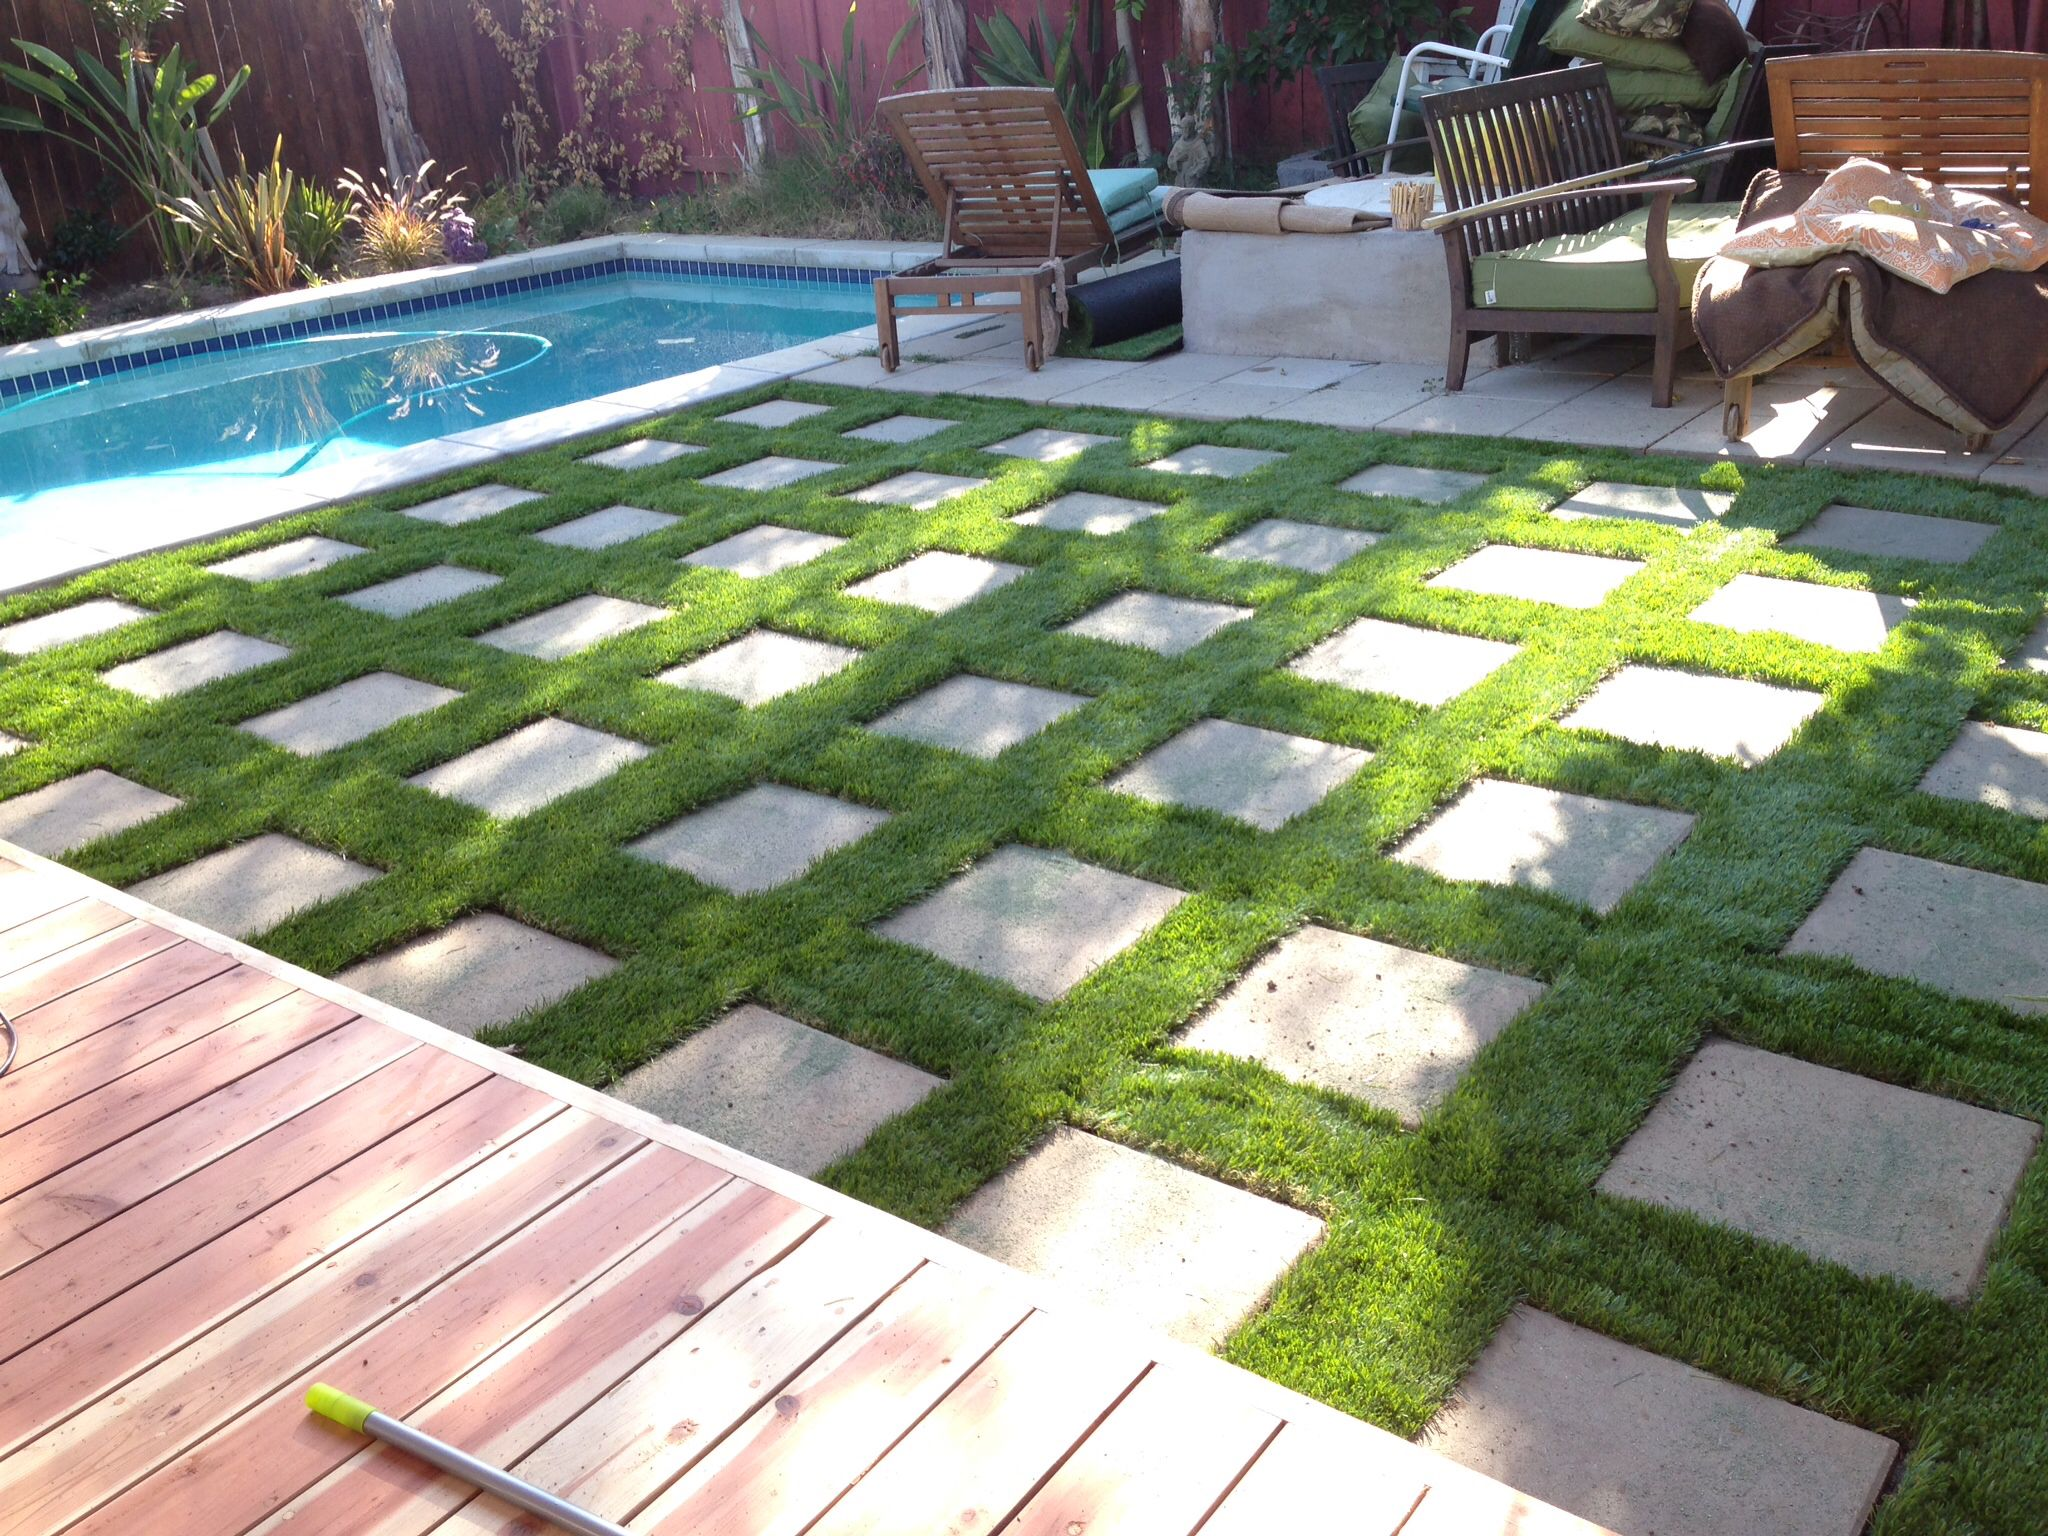 Artificial grass with pavers. Artificial grass patio